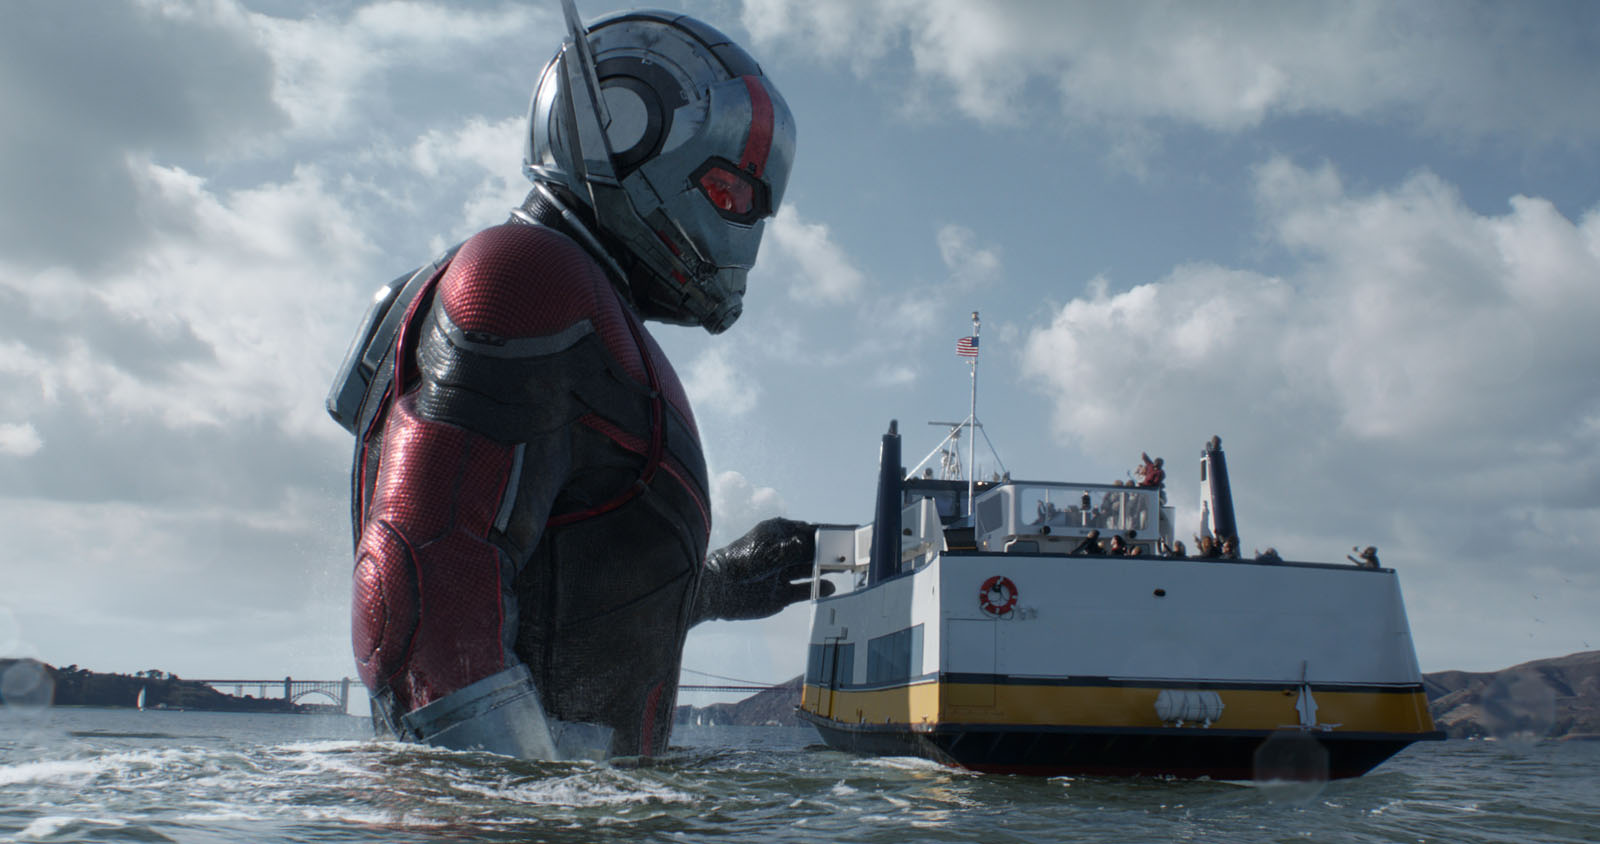 ant-man and the wasp - 2.jpg